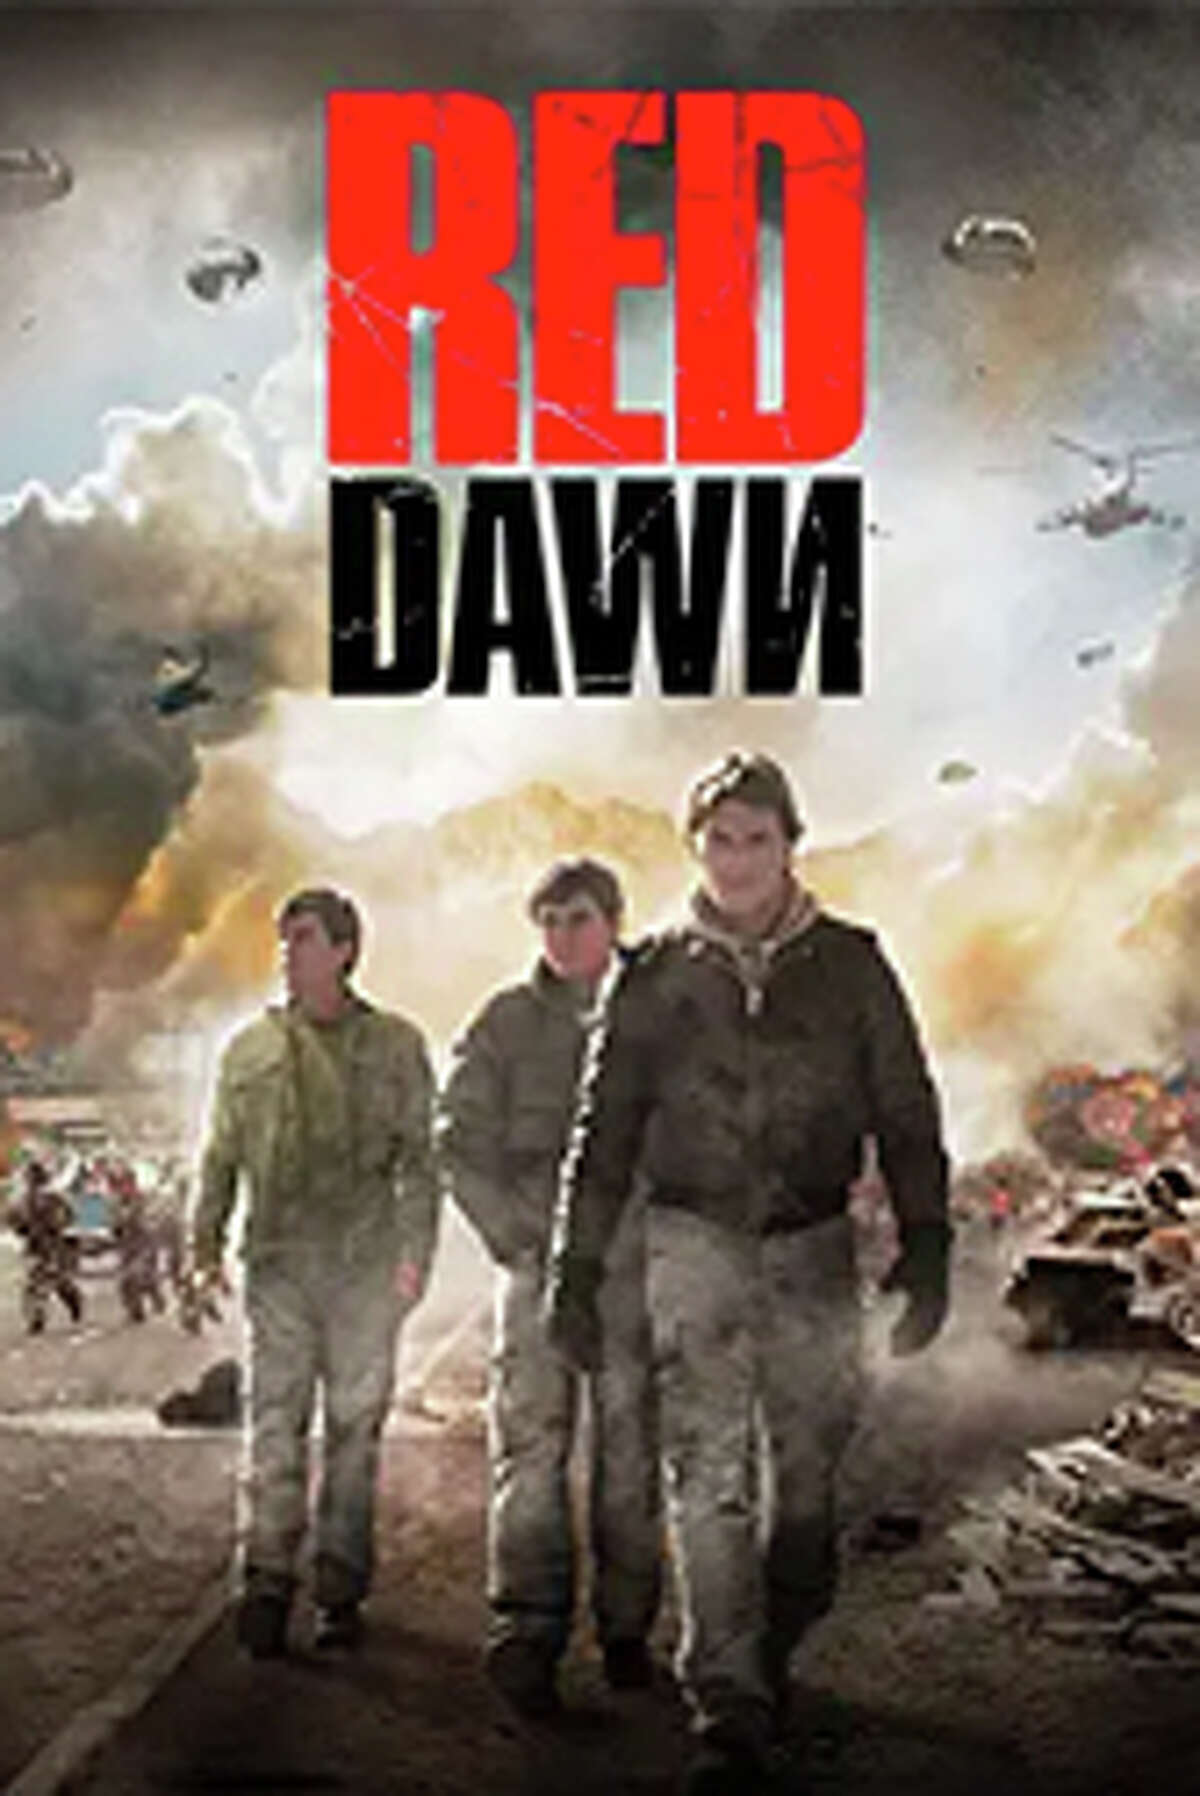 """Red Dawn (1984)Where to stream it: NetflixIf you've never seen """"Red Dawn,"""" it's simply impossible to describe the amount of raw, American testosterone packed into this crisp 110 minutes. After Russians invade the entire country, it's up to a band of barely armed teenagers to fight for freedom in the Colorado mountains. This movie is not a comedy, it's not self-aware or winking at the audience, and it's sometimes disturbingly violent. Patrick Swayze (""""Dirty Dancing,"""" """"Point Break""""), Jennifer Gray (""""Dirty Dancing,"""" """"Wind"""") and Powers Boothe (""""Tombstone,"""" """"Sin City"""") lead the cast.And forget the 2012 remake. It doesn't have a third act! They just get right up to the """"Reward"""" part of the Hero's Journey and then the movie ends. What were they thinking? This is America, gosh darn it, and in America we always have a third act."""